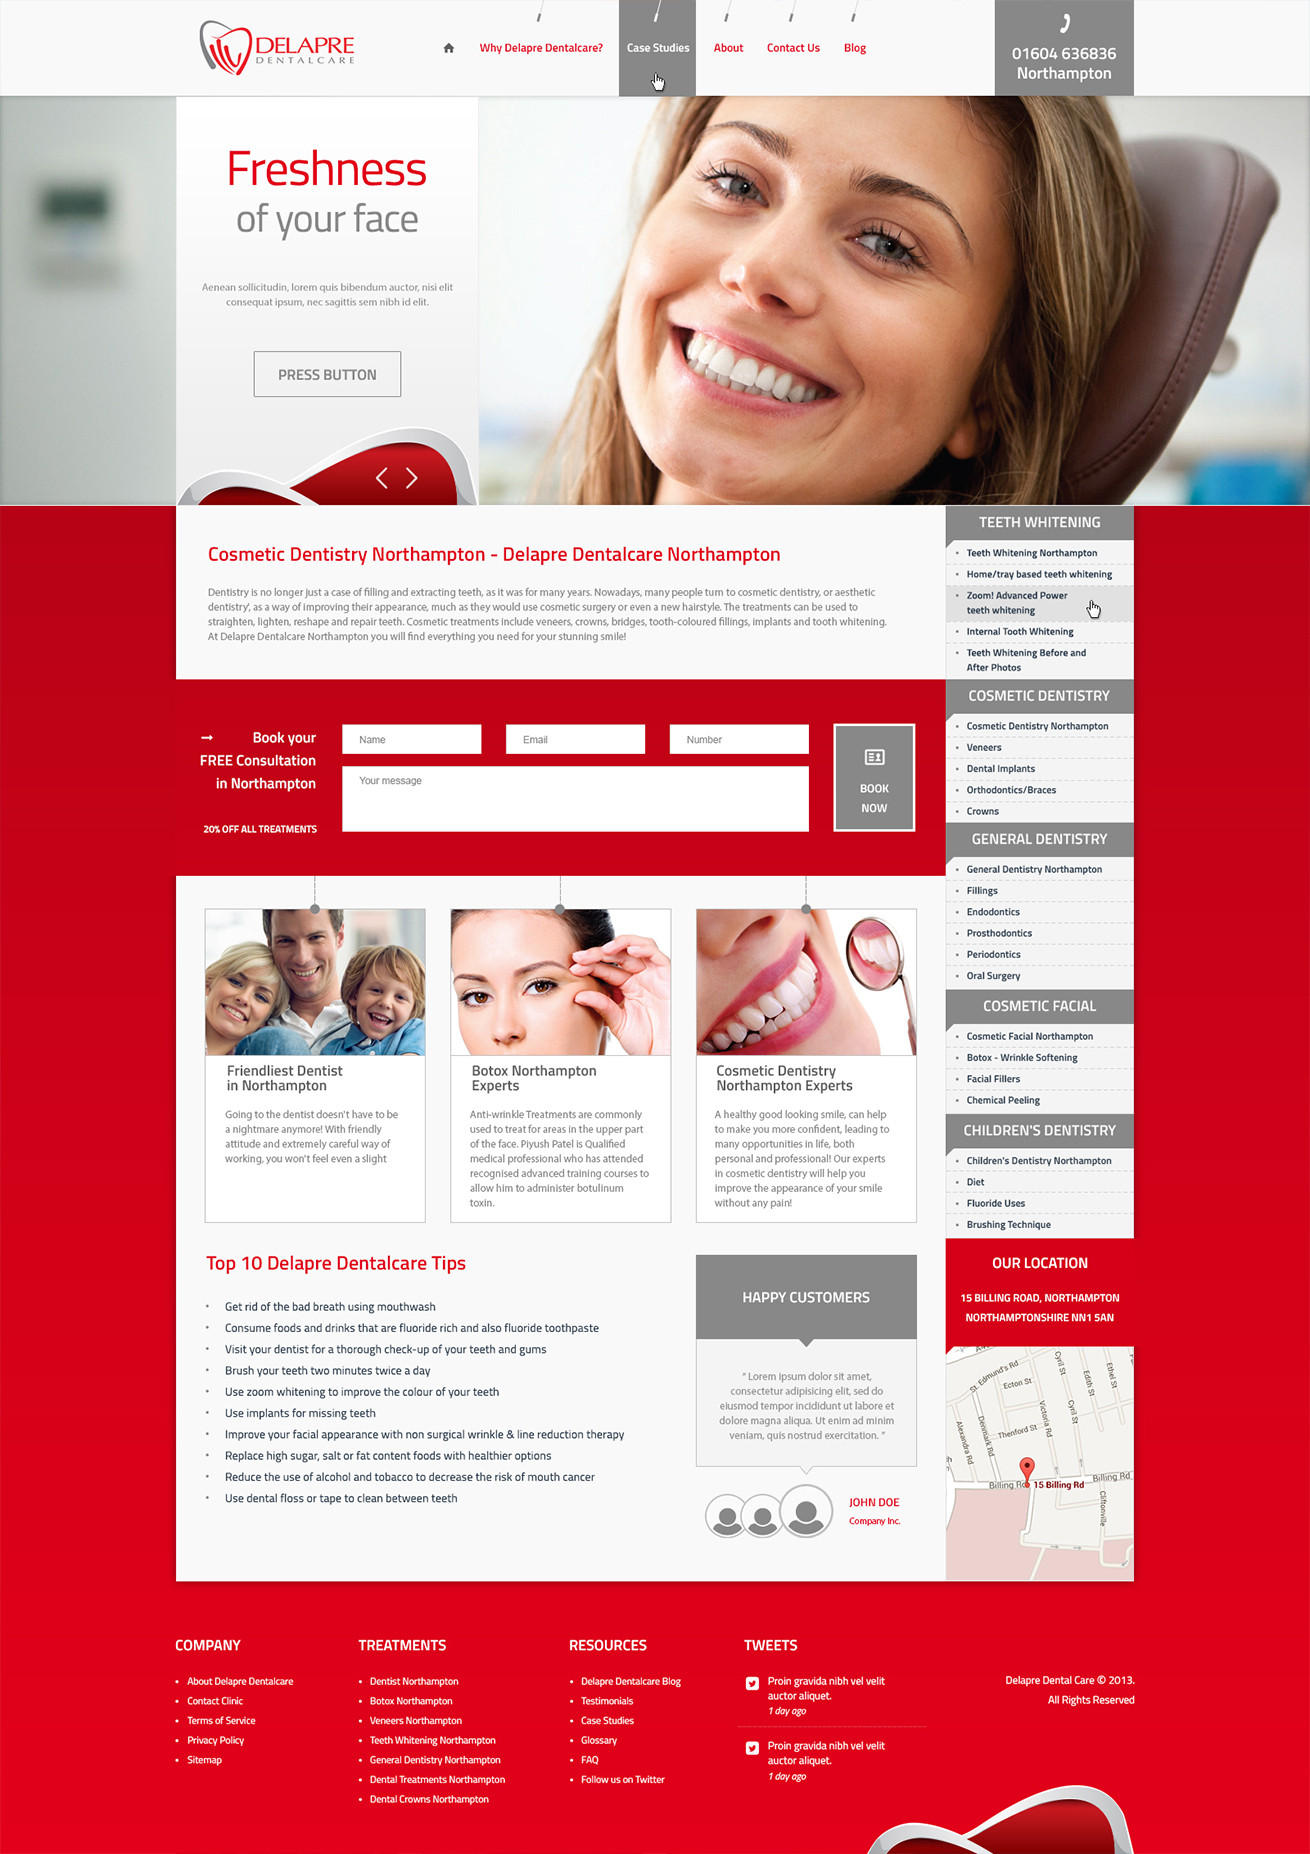 Express Premium Home Page Design / Redesign by AndiG - 54295